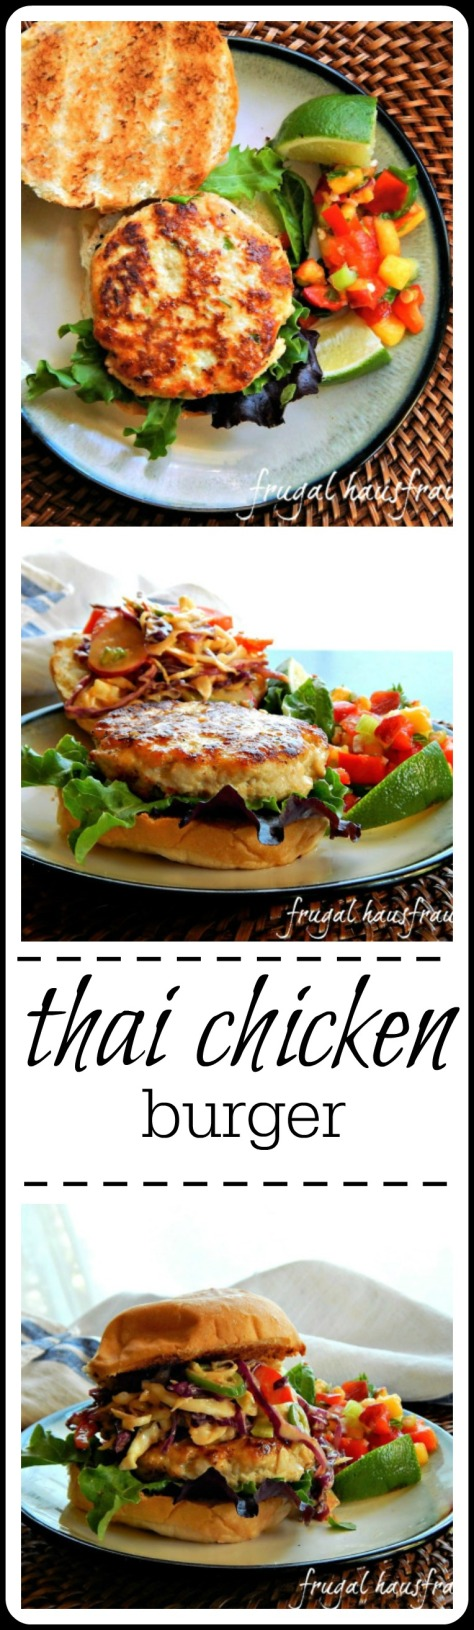 These Thai Chicken Burgers have a secret that keep them moist!  Yeah, that's a teaser - click to see the whole recipe.